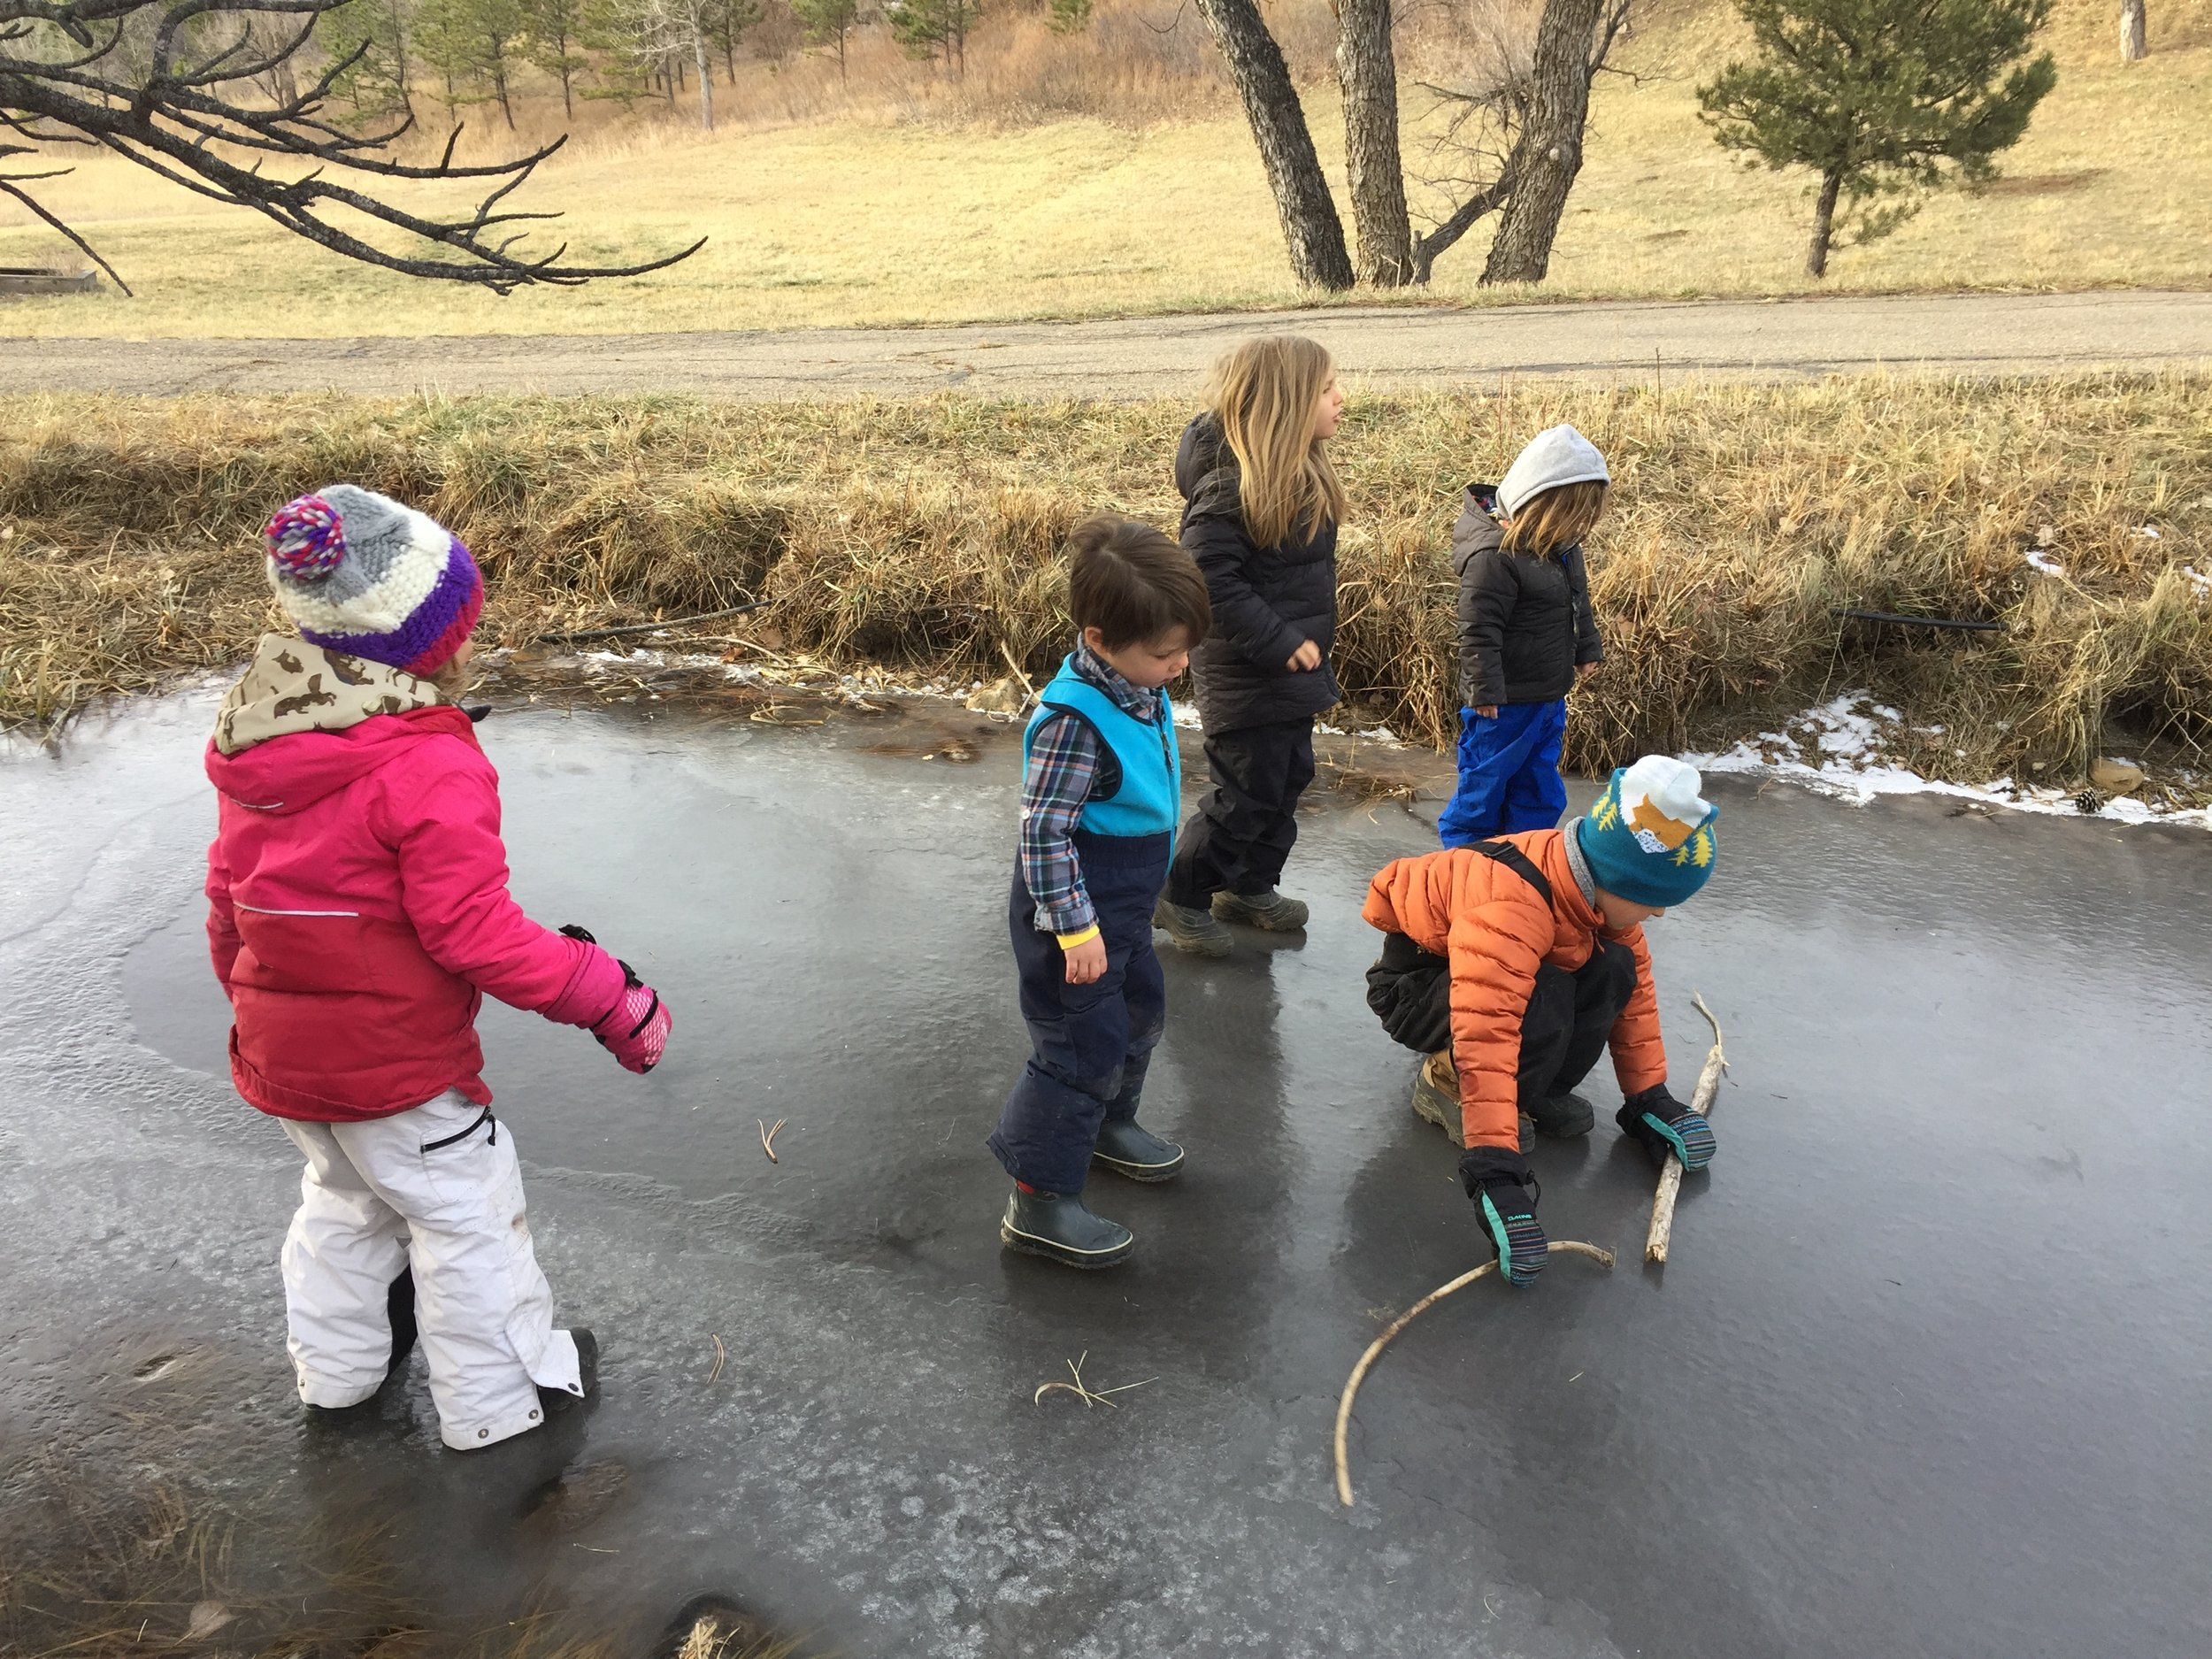 One of the older children setting a safety boundary on the shallowest end of the pond where the ice was perfect for sliding and crayfish-viewing.